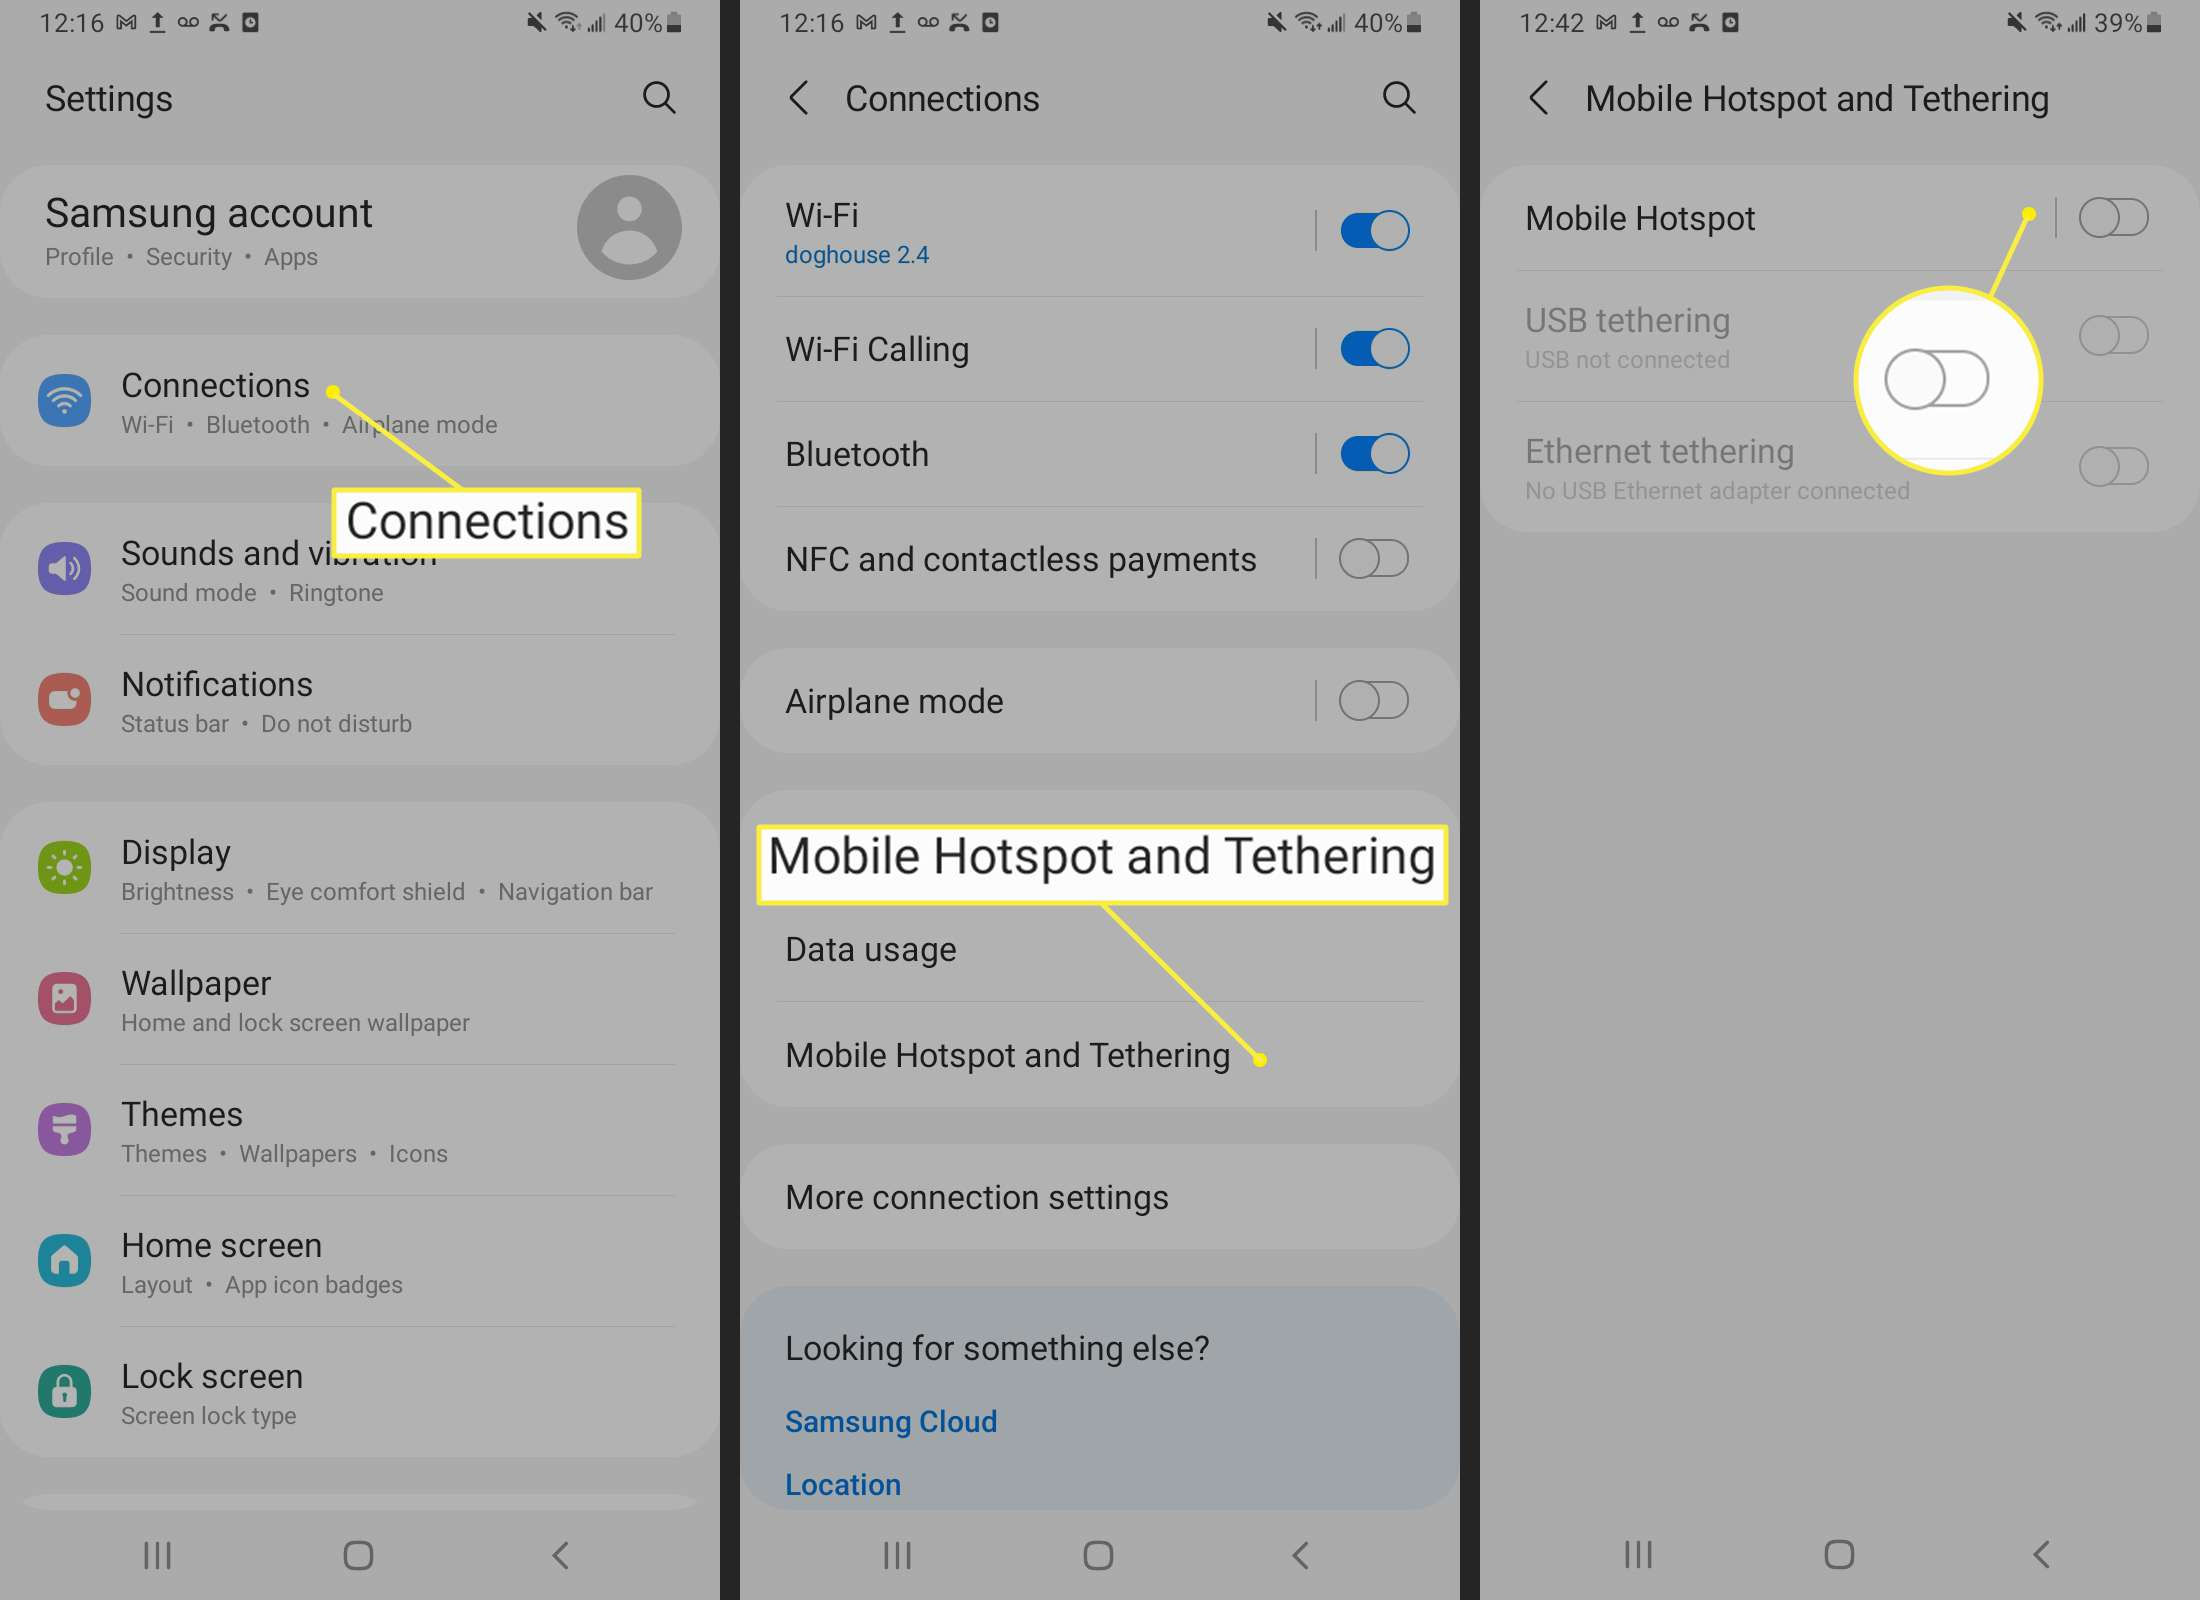 Android Mobile Hotspot and Tethering